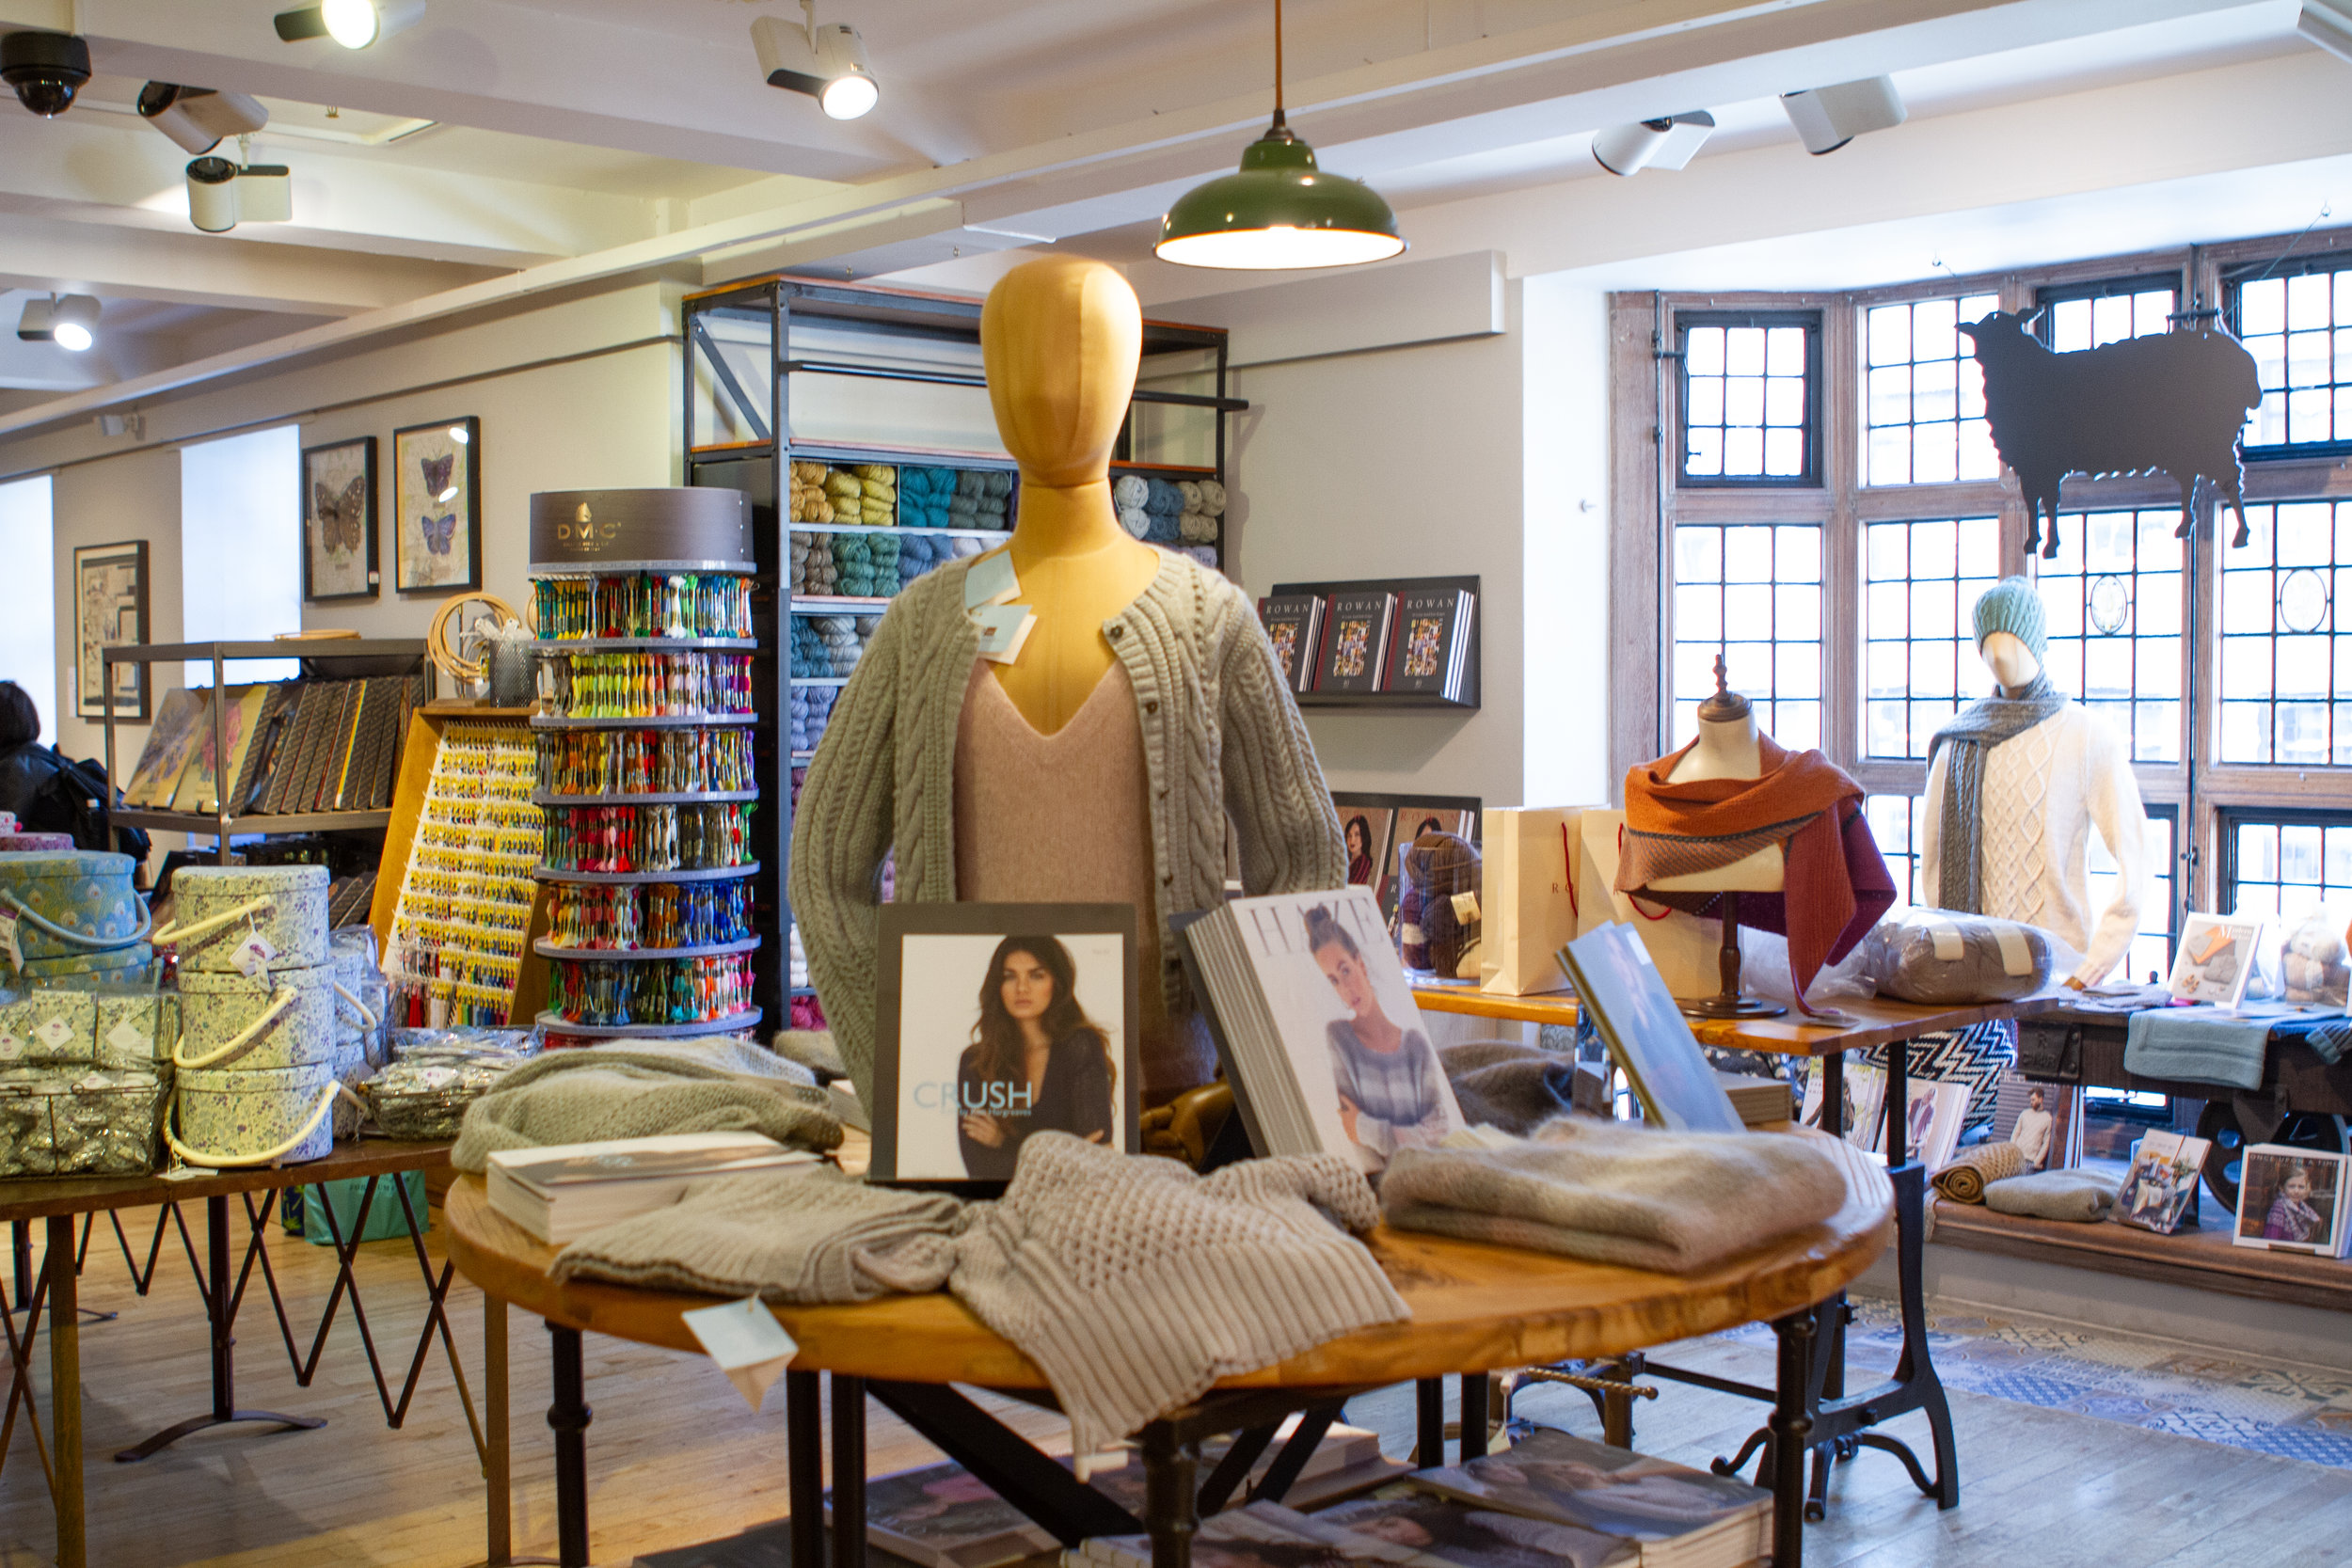 Liberty's haberdashery department features more than just fabric and yarn.